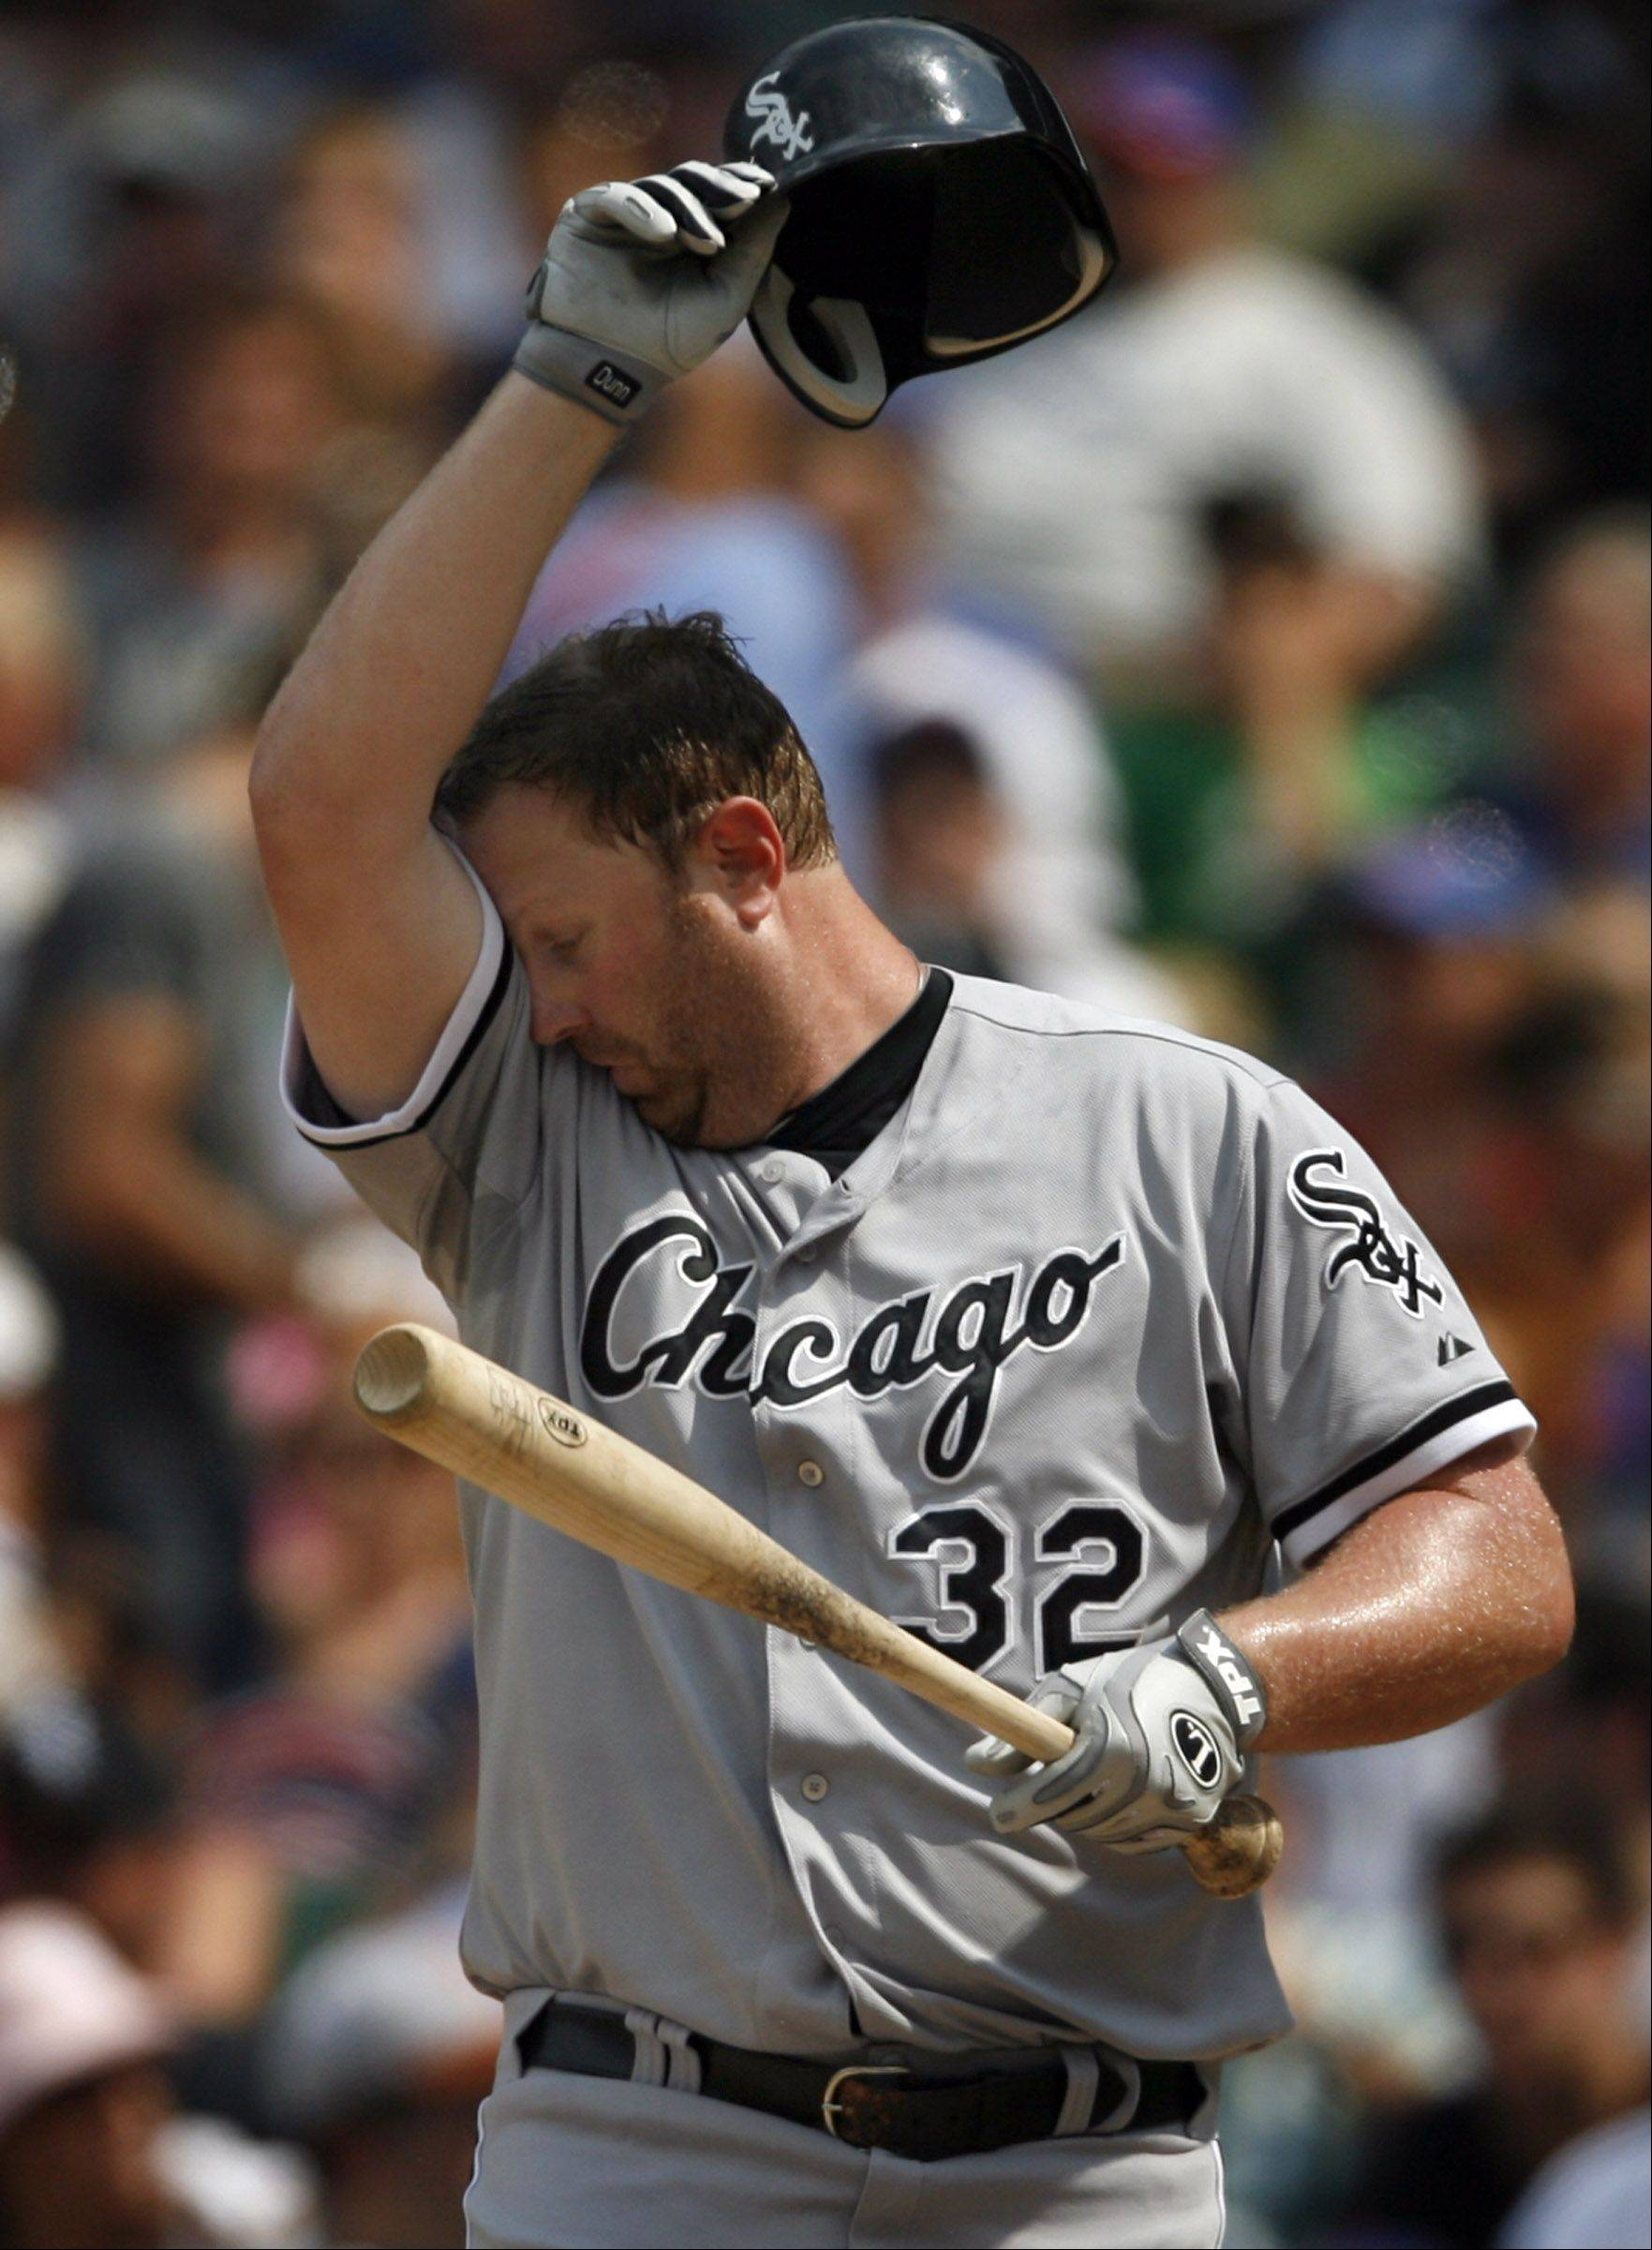 White Sox Adam Dunn wipes his forehead after striking out as Sox win 1-0 at Wrigley Field on Saturday.